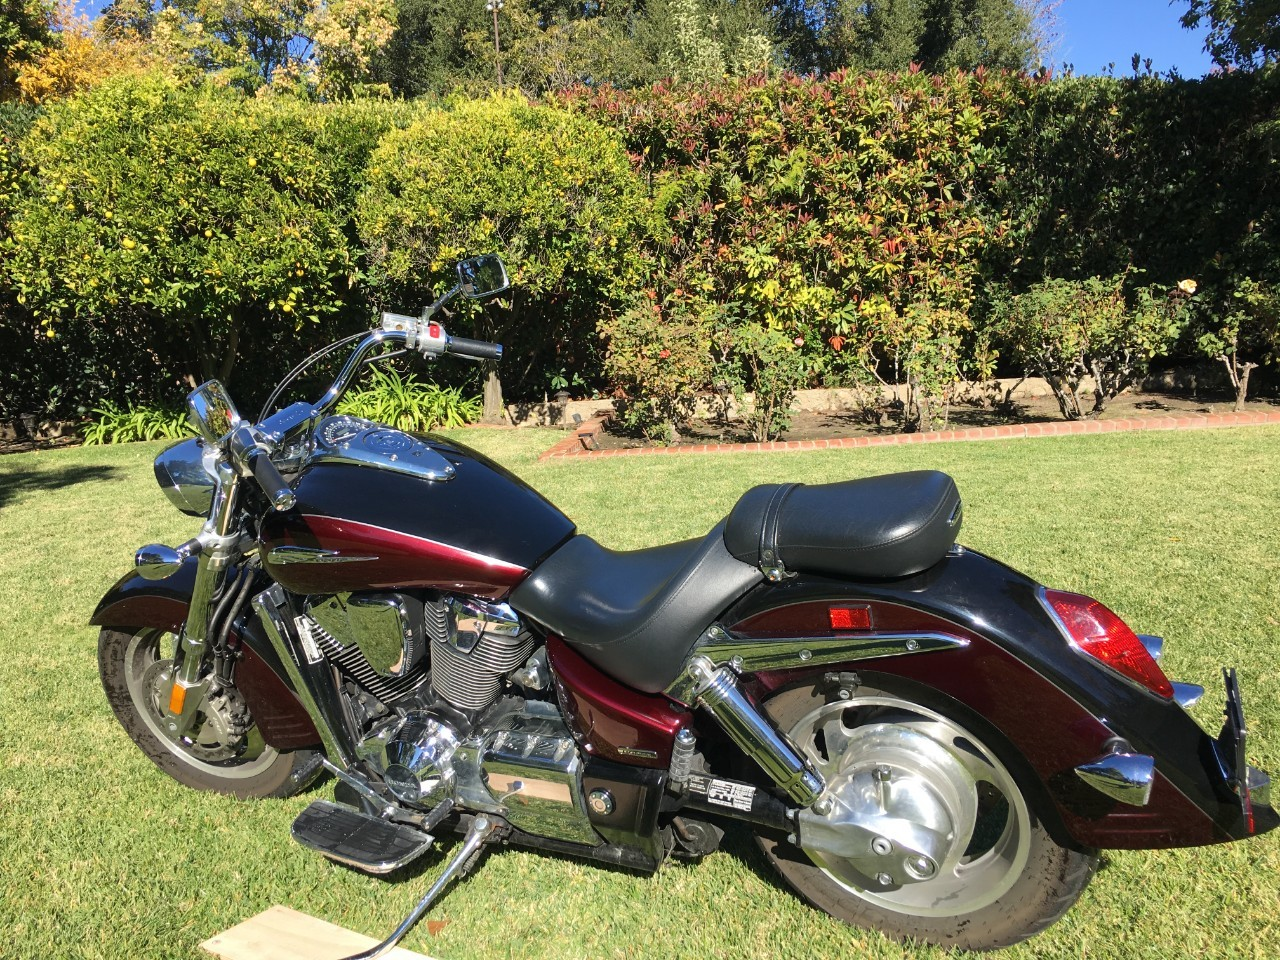 Honda Motorcycles For Sale 39130 Cycle Trader Motorcycle Engine Diagram 2008 C70 Get Free Image About Wiring